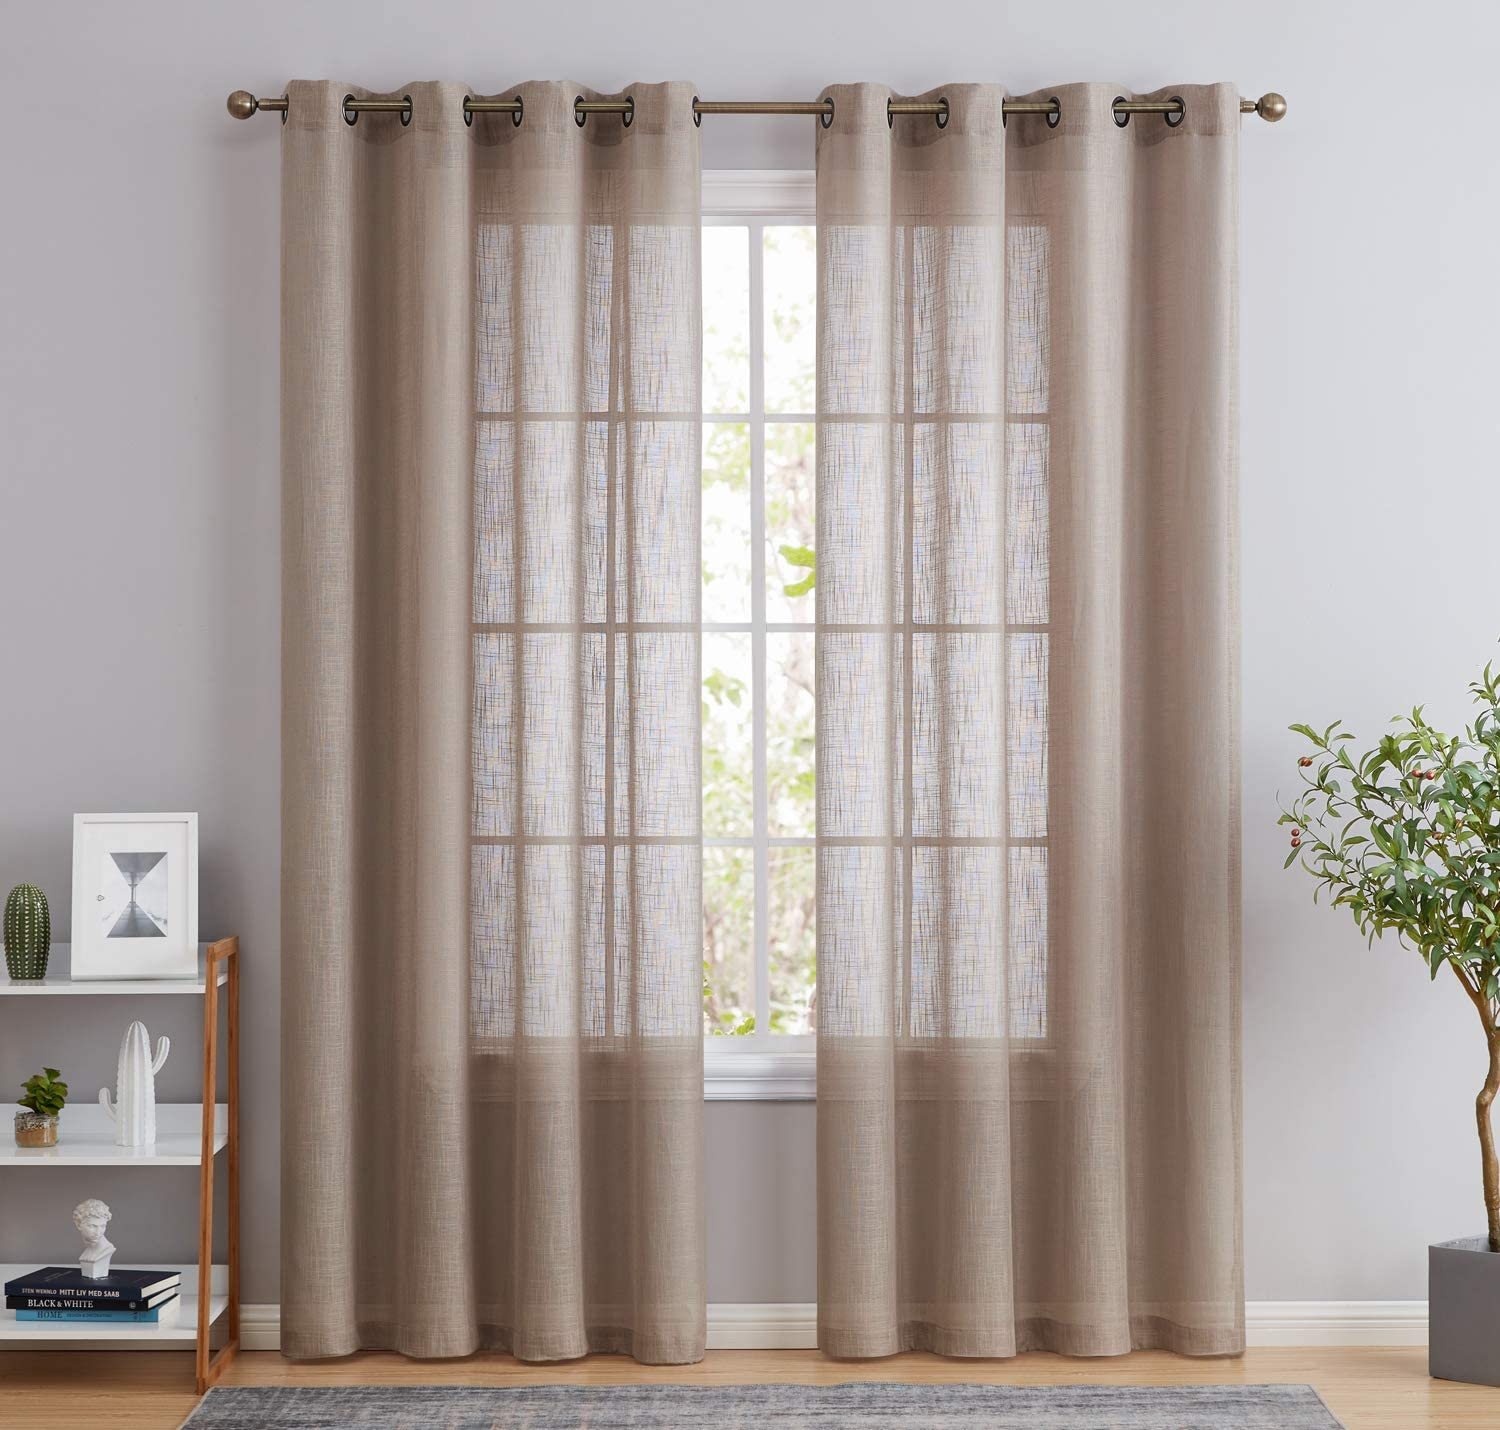 HLC.ME Abbey Faux Linen Textured Semi Sheer Privacy Sun Light Filtering Transparent Window Grommet Short Thick Curtains Drapery Panels for Office & Living Room, 2 Panels (54 W x 63 L, Taupe)